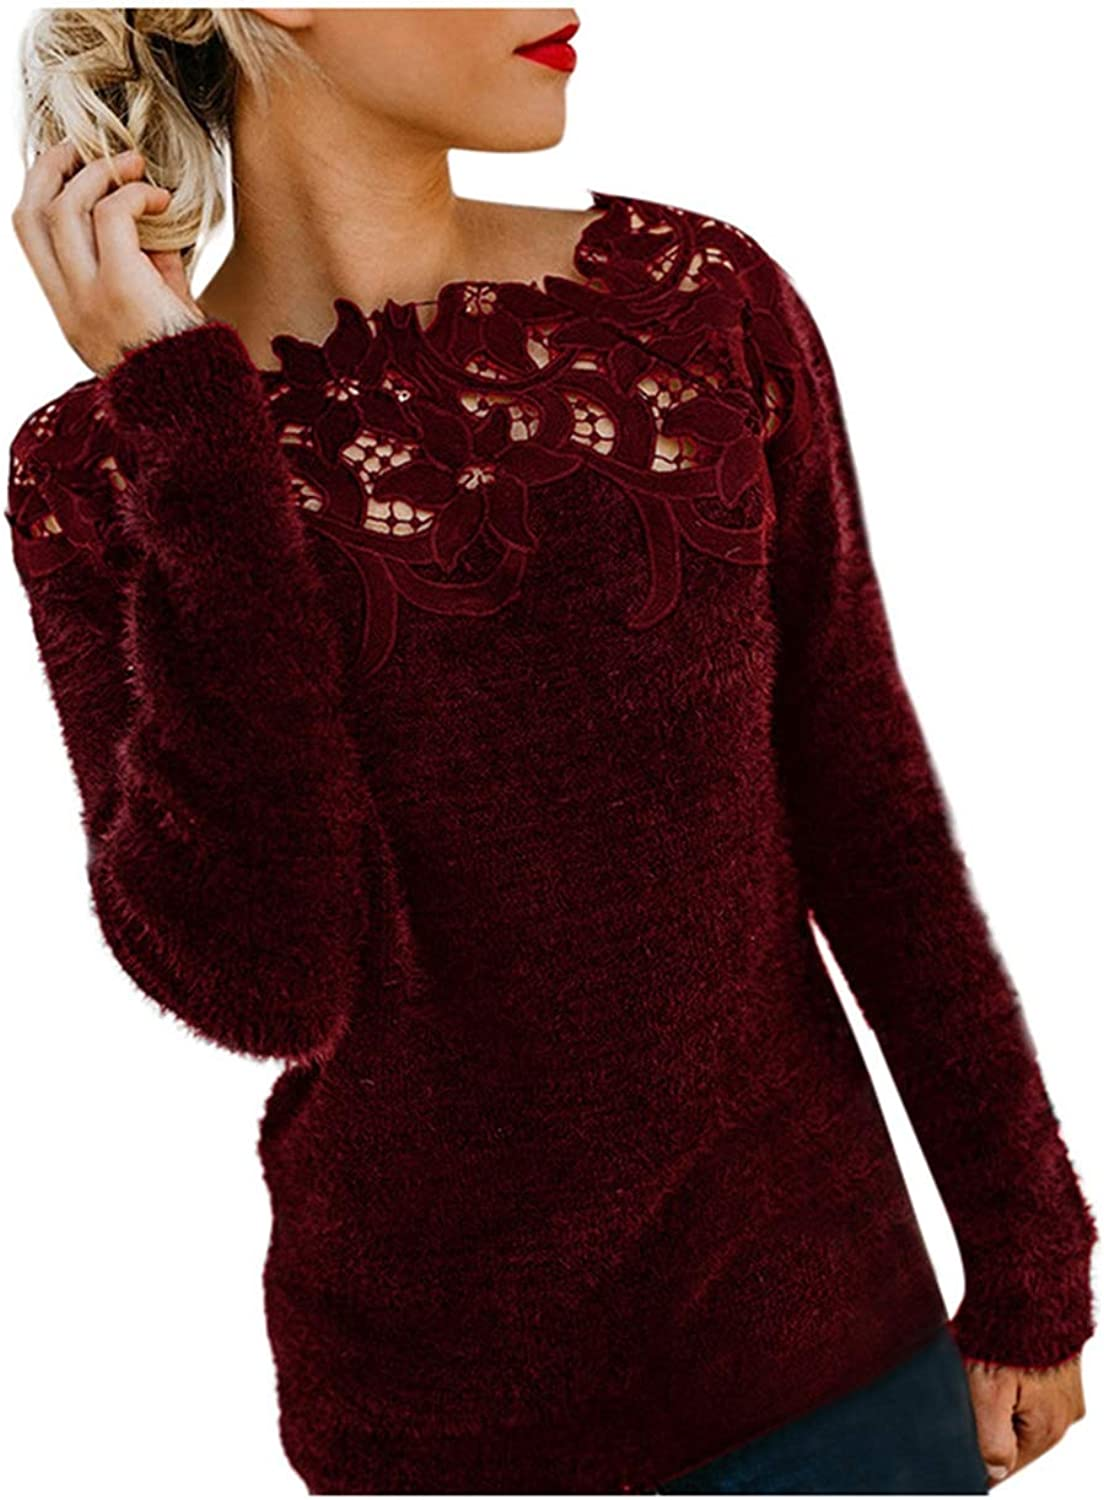 Meikosks Ladies Lace Patchwork Knitting Tops Long Sleeve V Neck Sweater Winter Loose Pullover